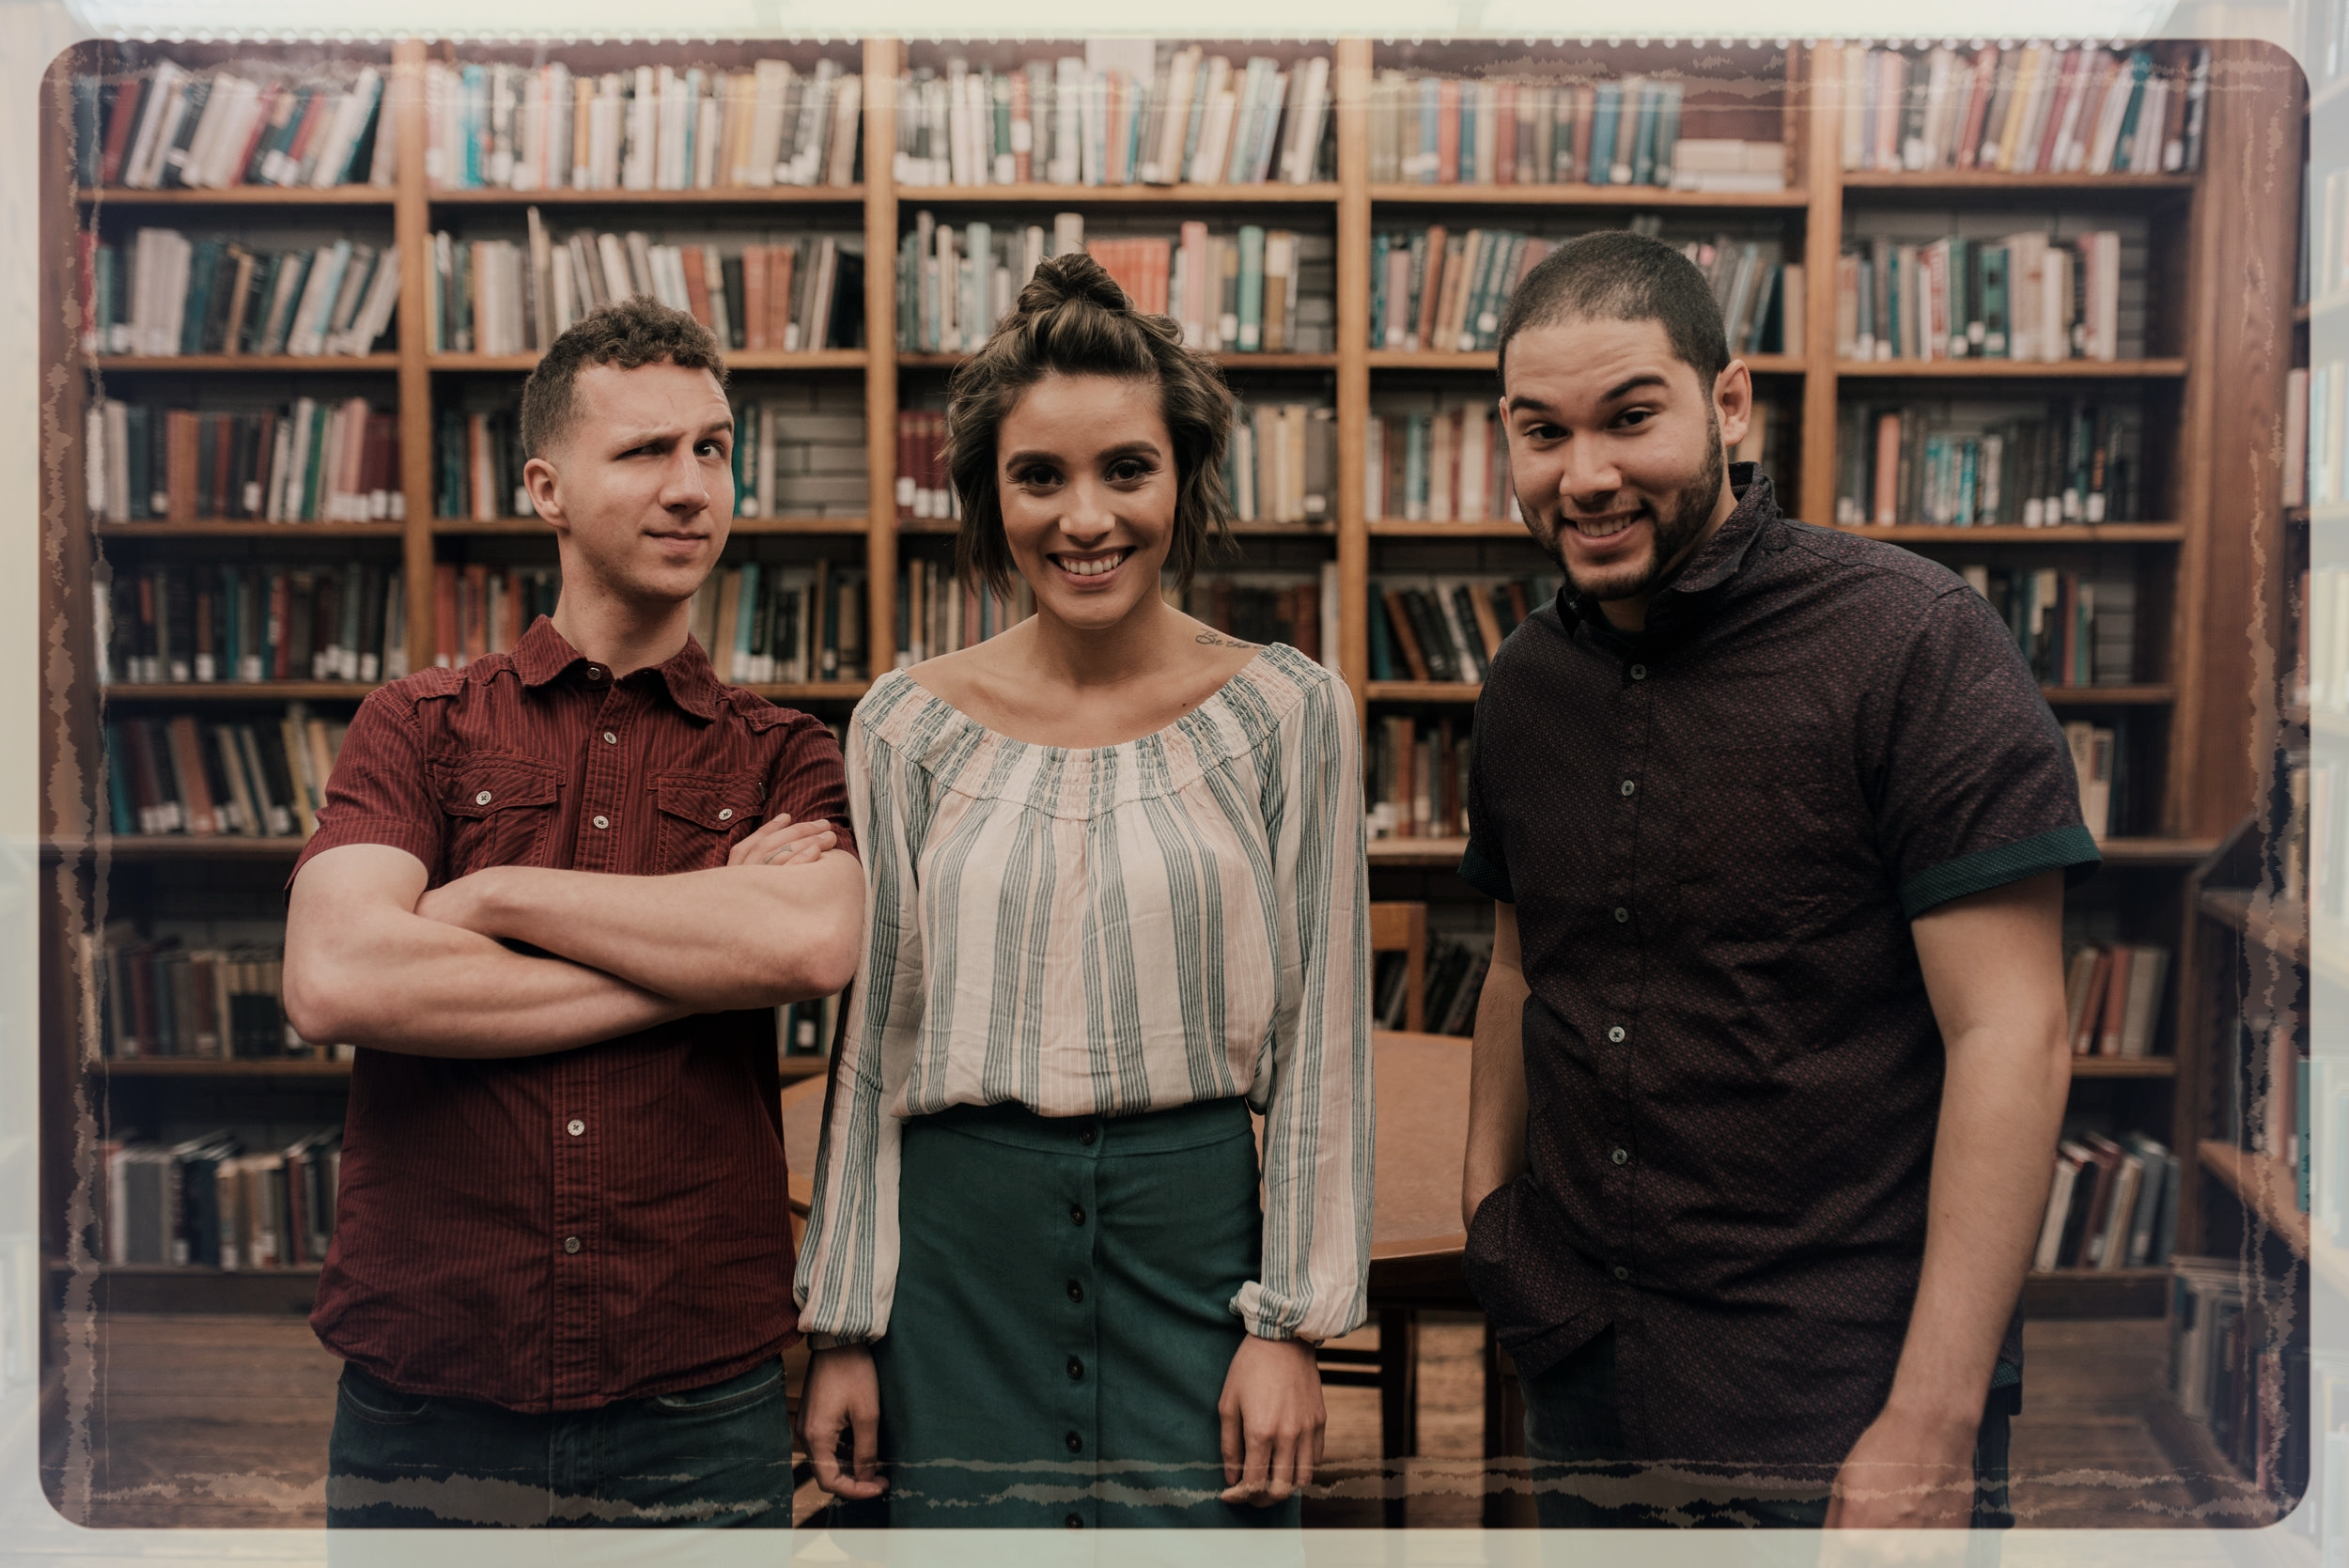 Dave, Brianna, and Christian goofin' around on set during the scene in the library.